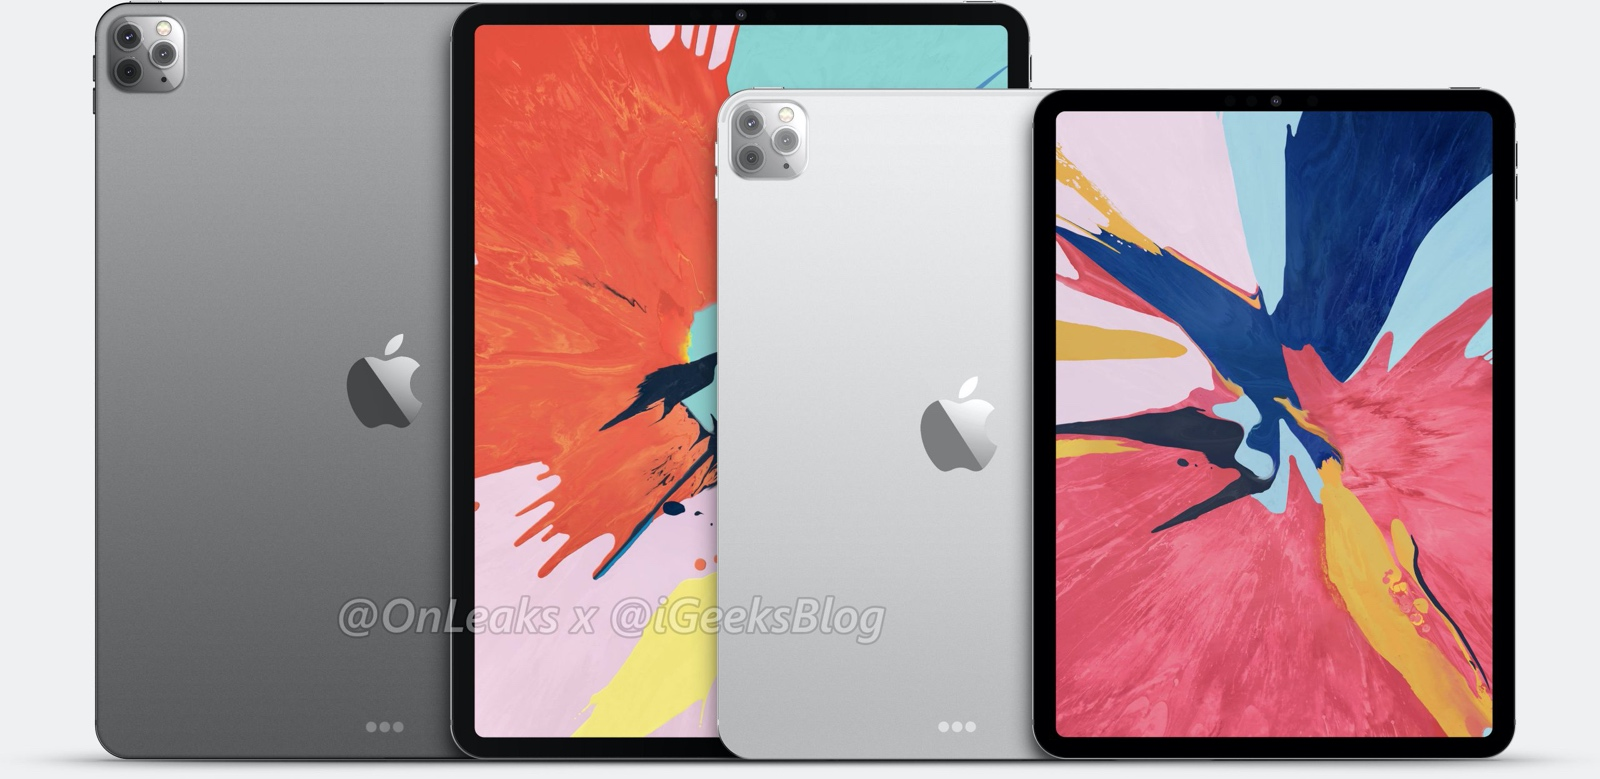 Innolux to Supply Mini-LED Panels for iPad Pro to Launch in Second Half of 2020 - MacRumors